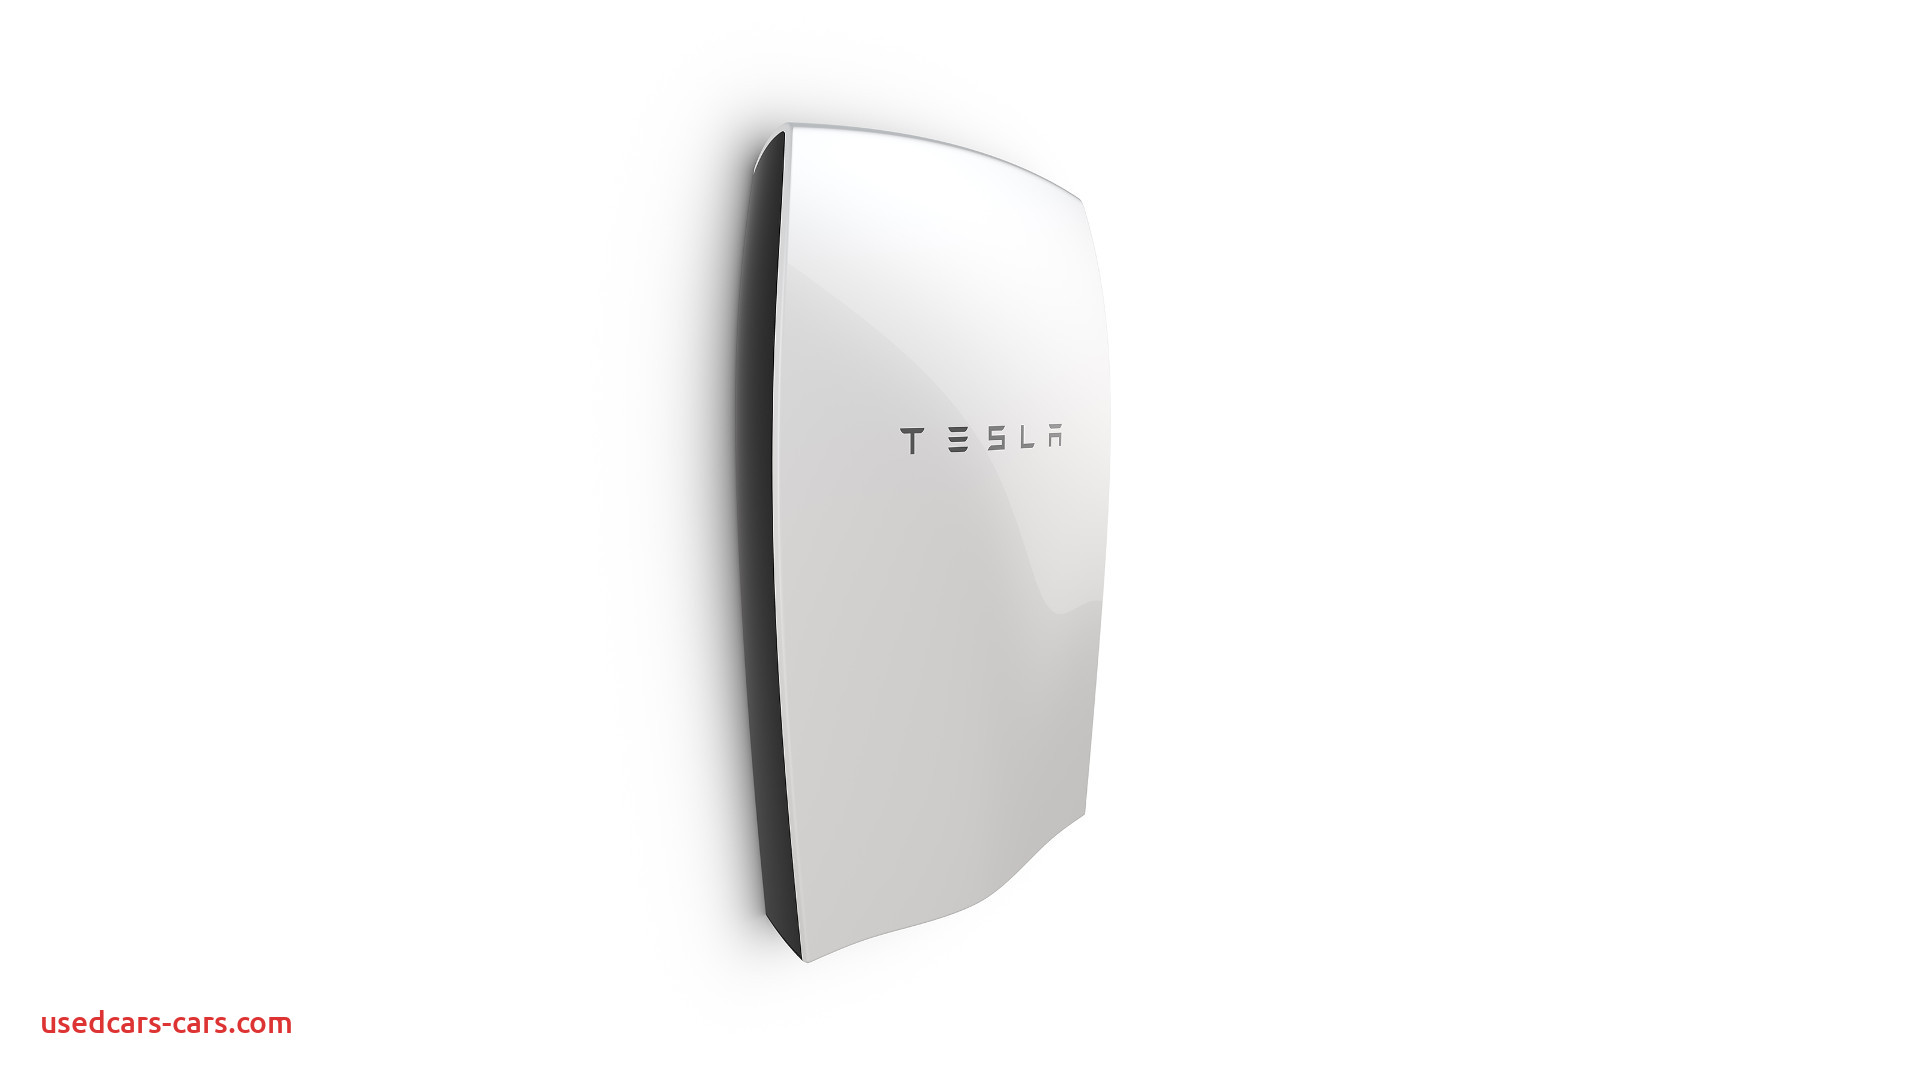 Tesla Powerwall Elegant How Much Money Does Teslas Powerwall Really Save On Your